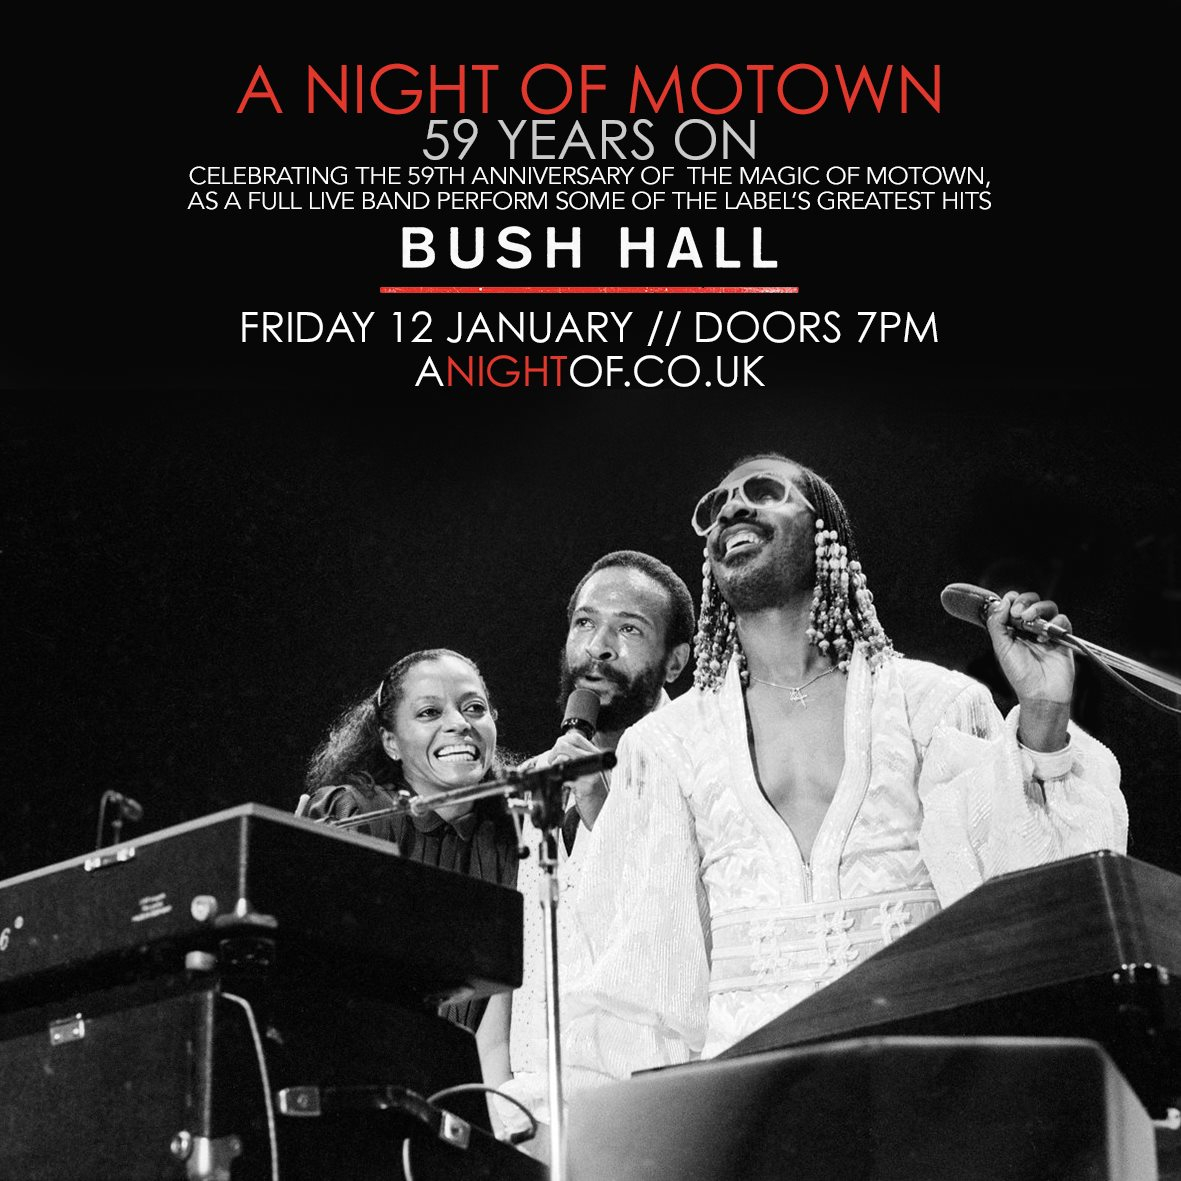 RA: A Night of Motown: 59 Years On at Bush Hall, London (2018)